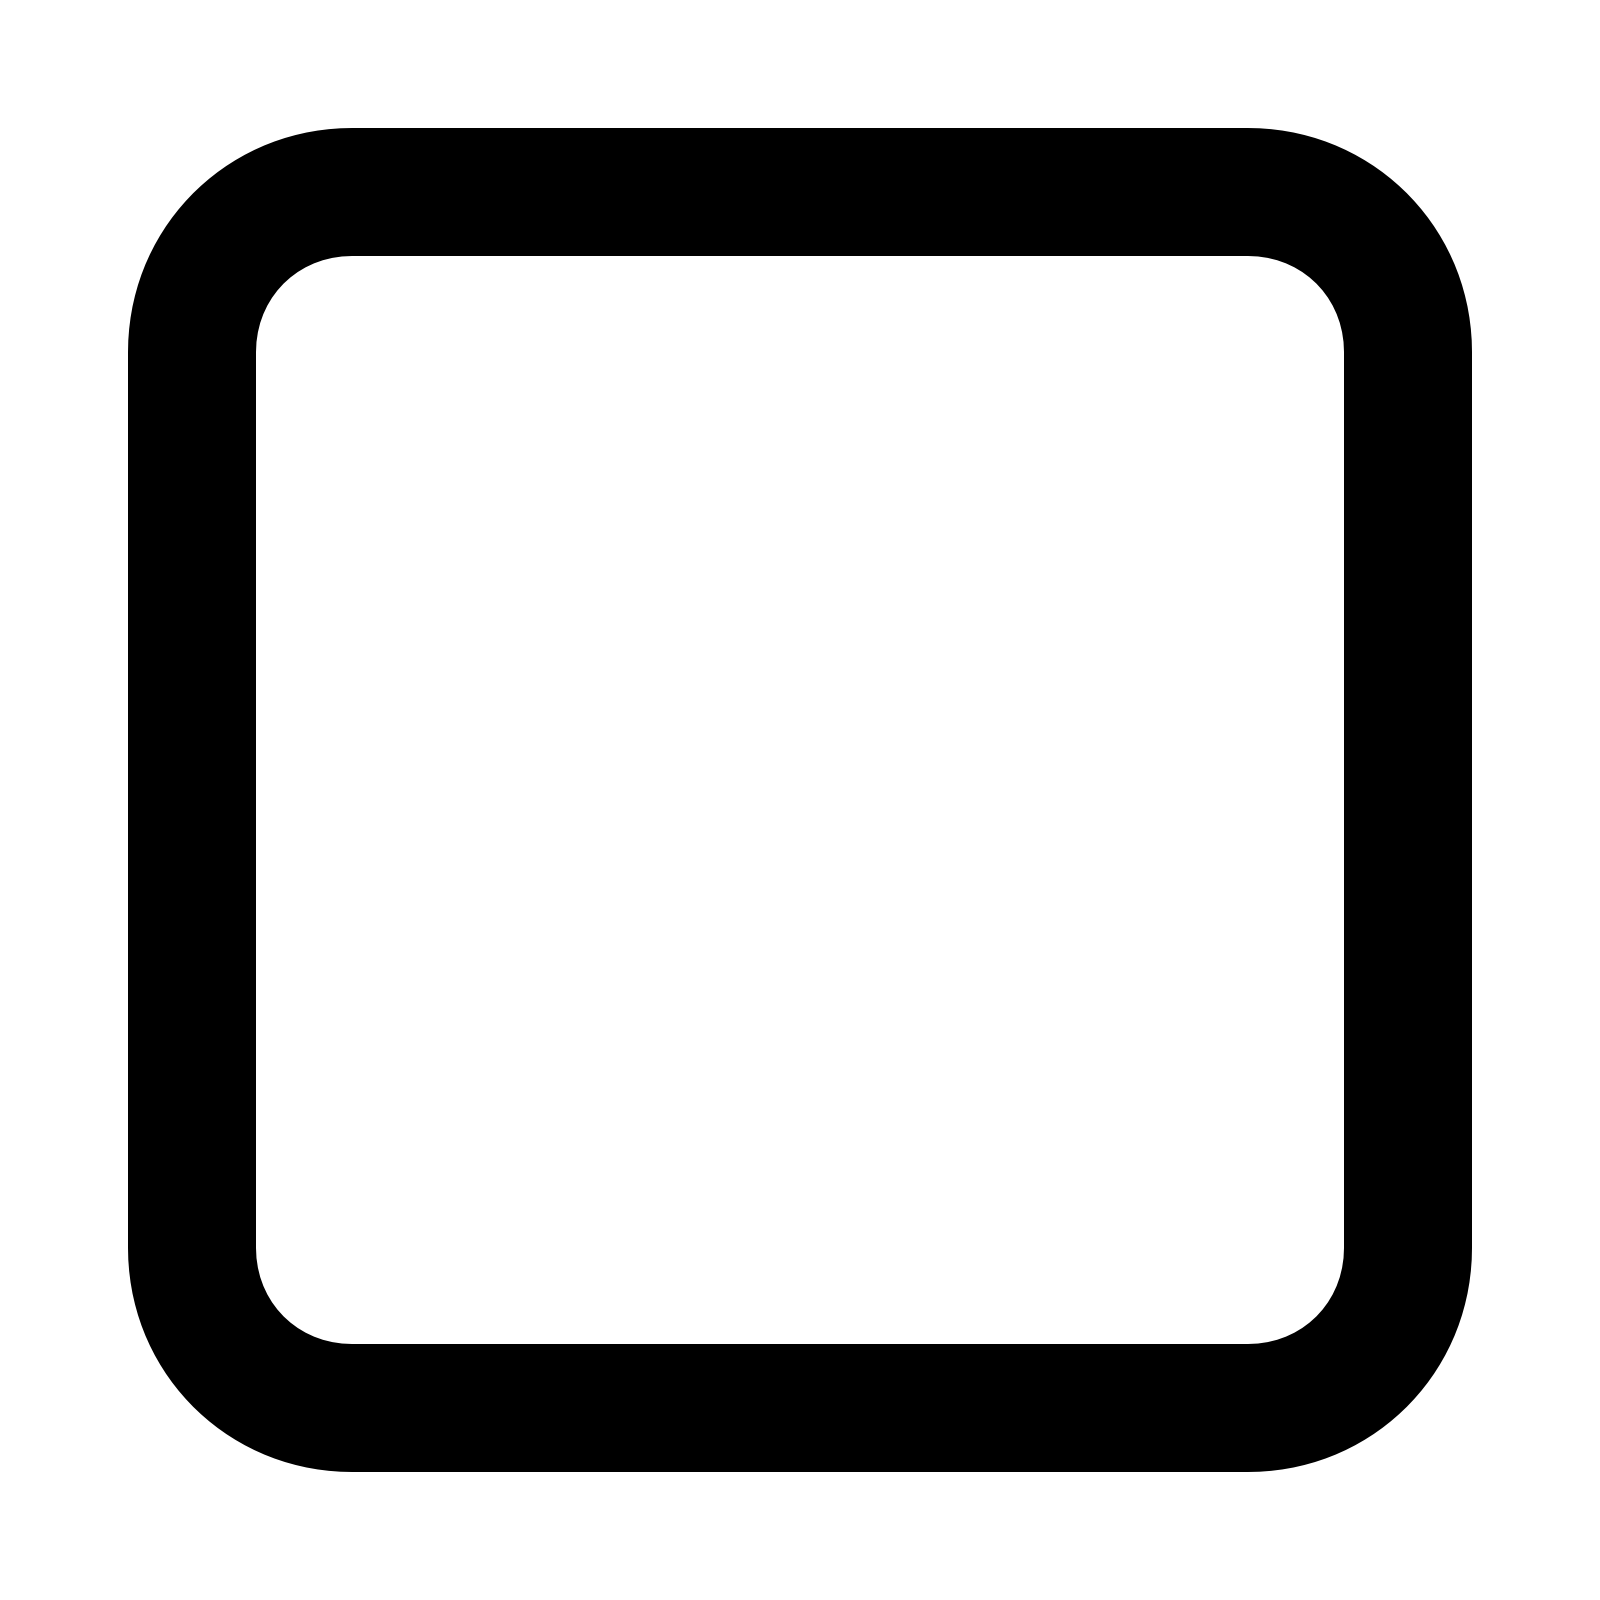 transparent library Unchecked Checkbox Icon